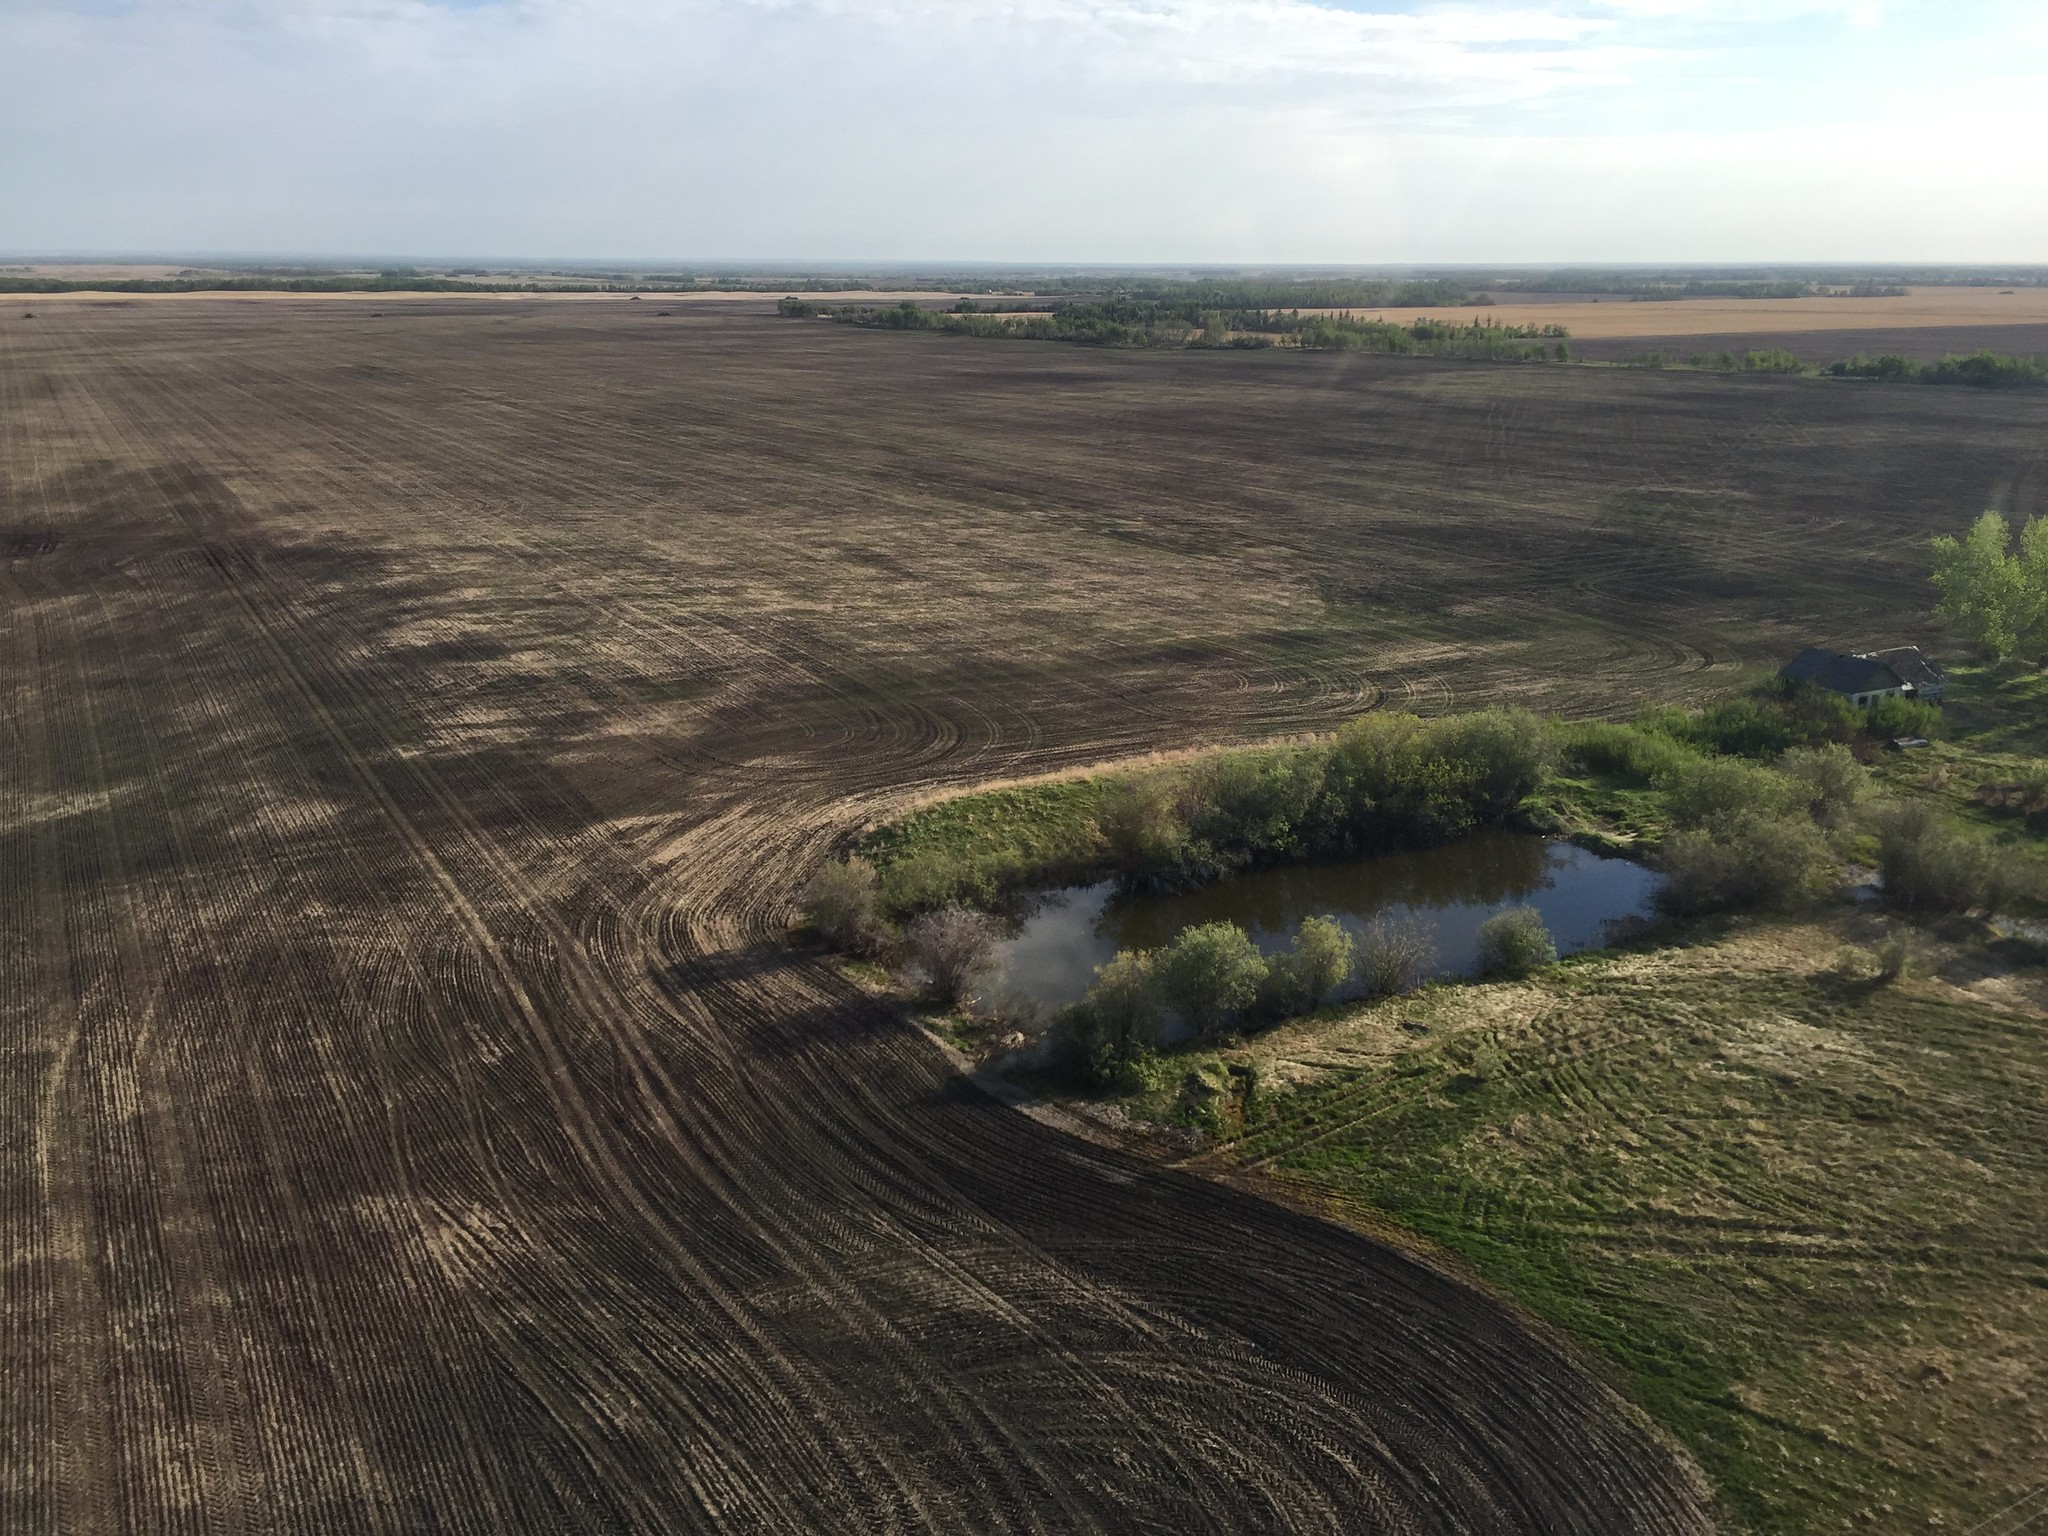 Most habitat in this area consists of stock ponds due to dry conditions. USFWS